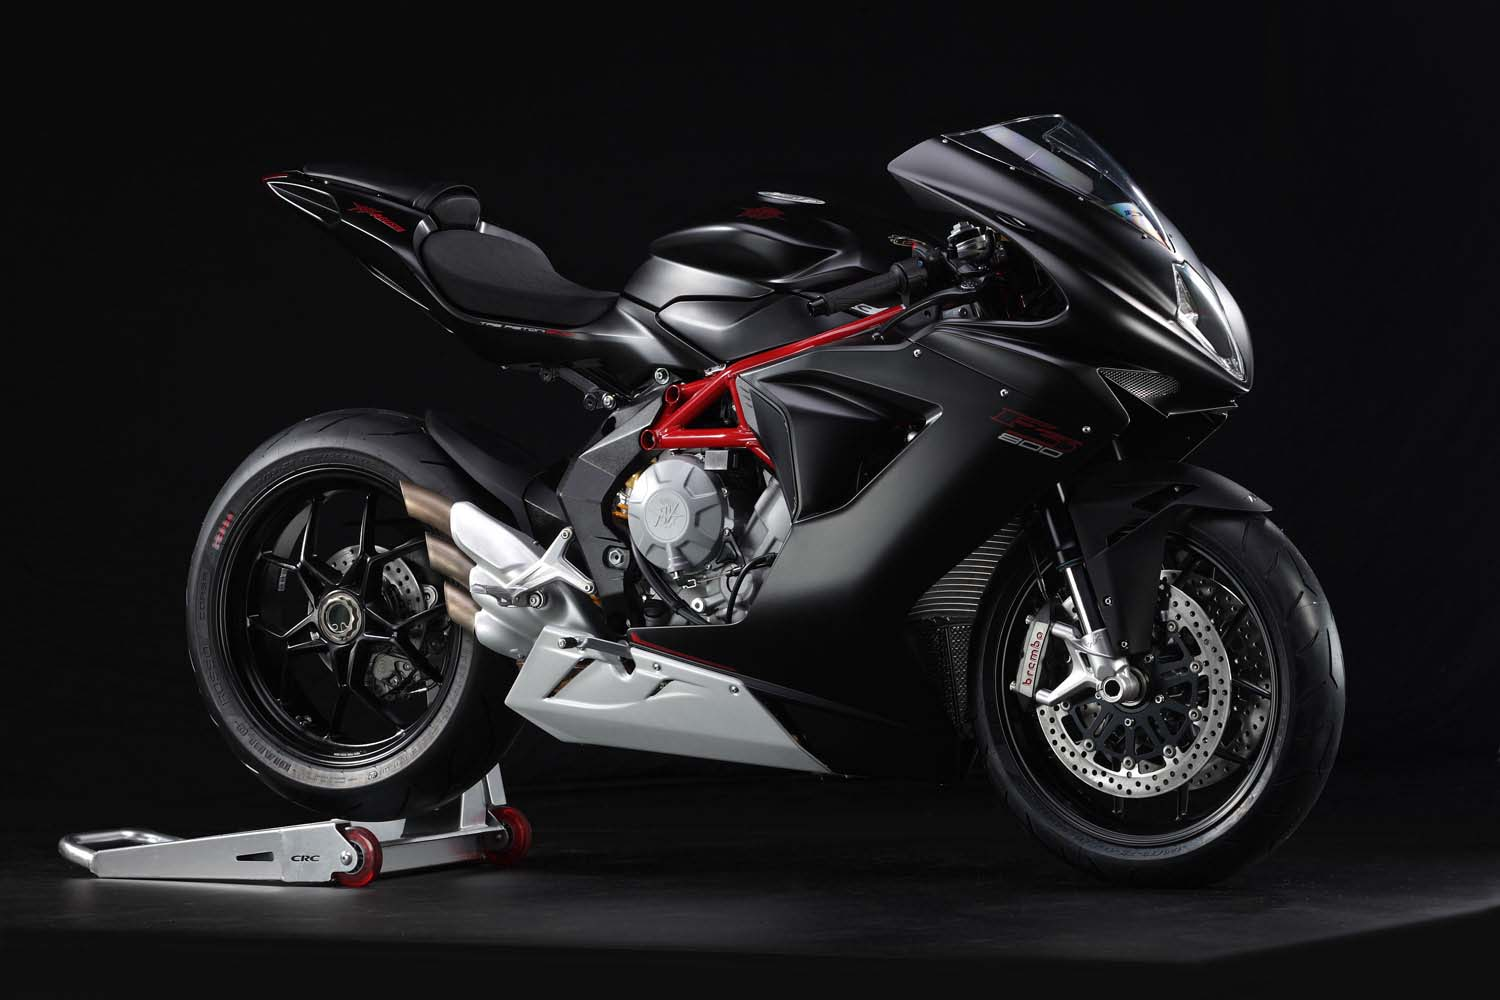 mv agusta f3 800 146hp 381 lbs mvics eas asphalt rubber. Black Bedroom Furniture Sets. Home Design Ideas